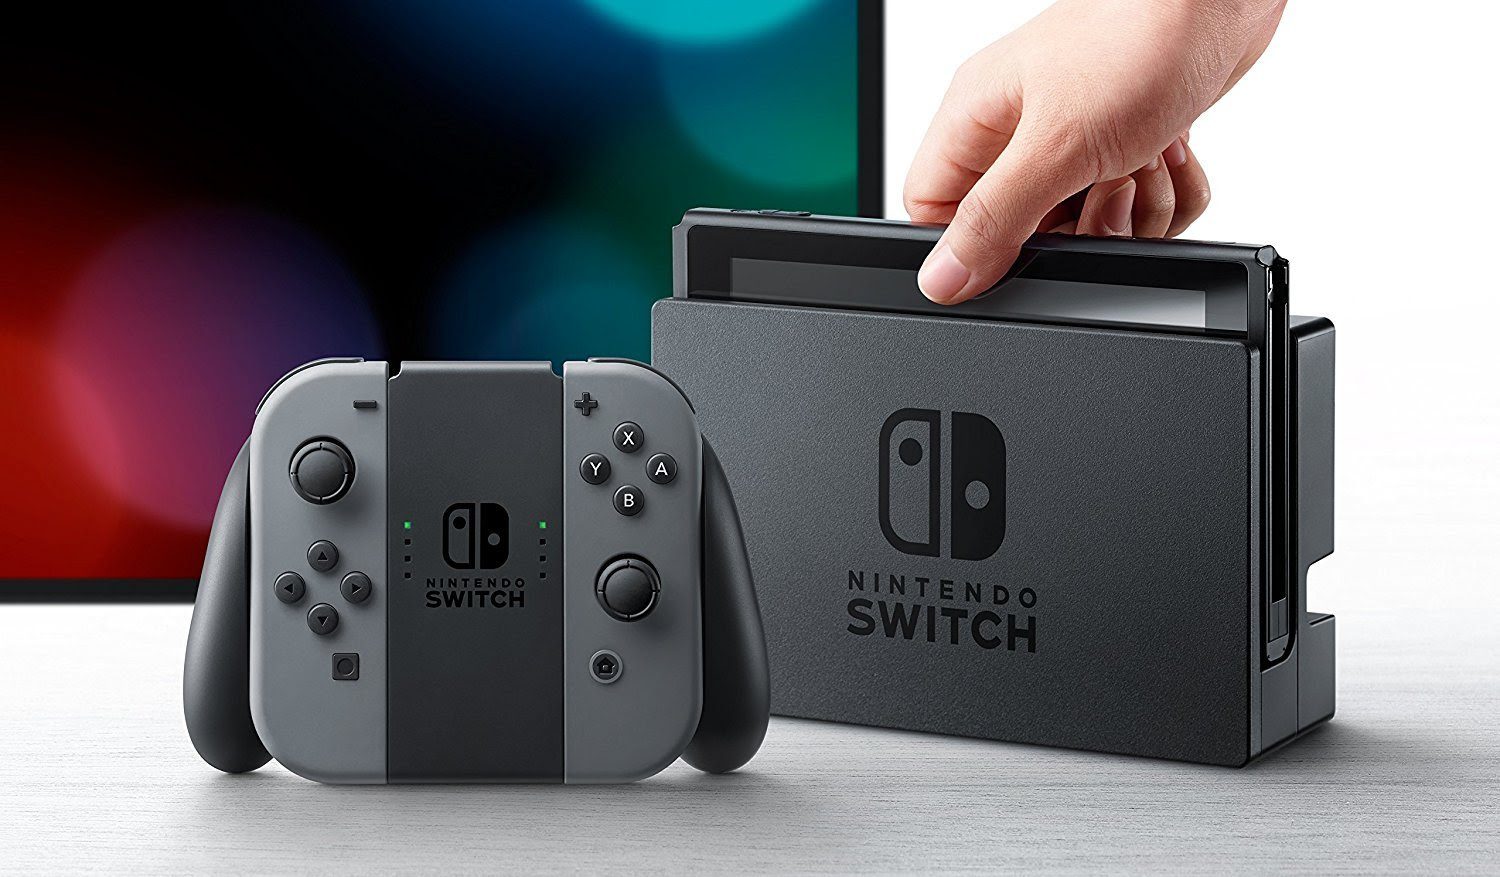 Here are your most requested features for the Nintendo Switch screenshot